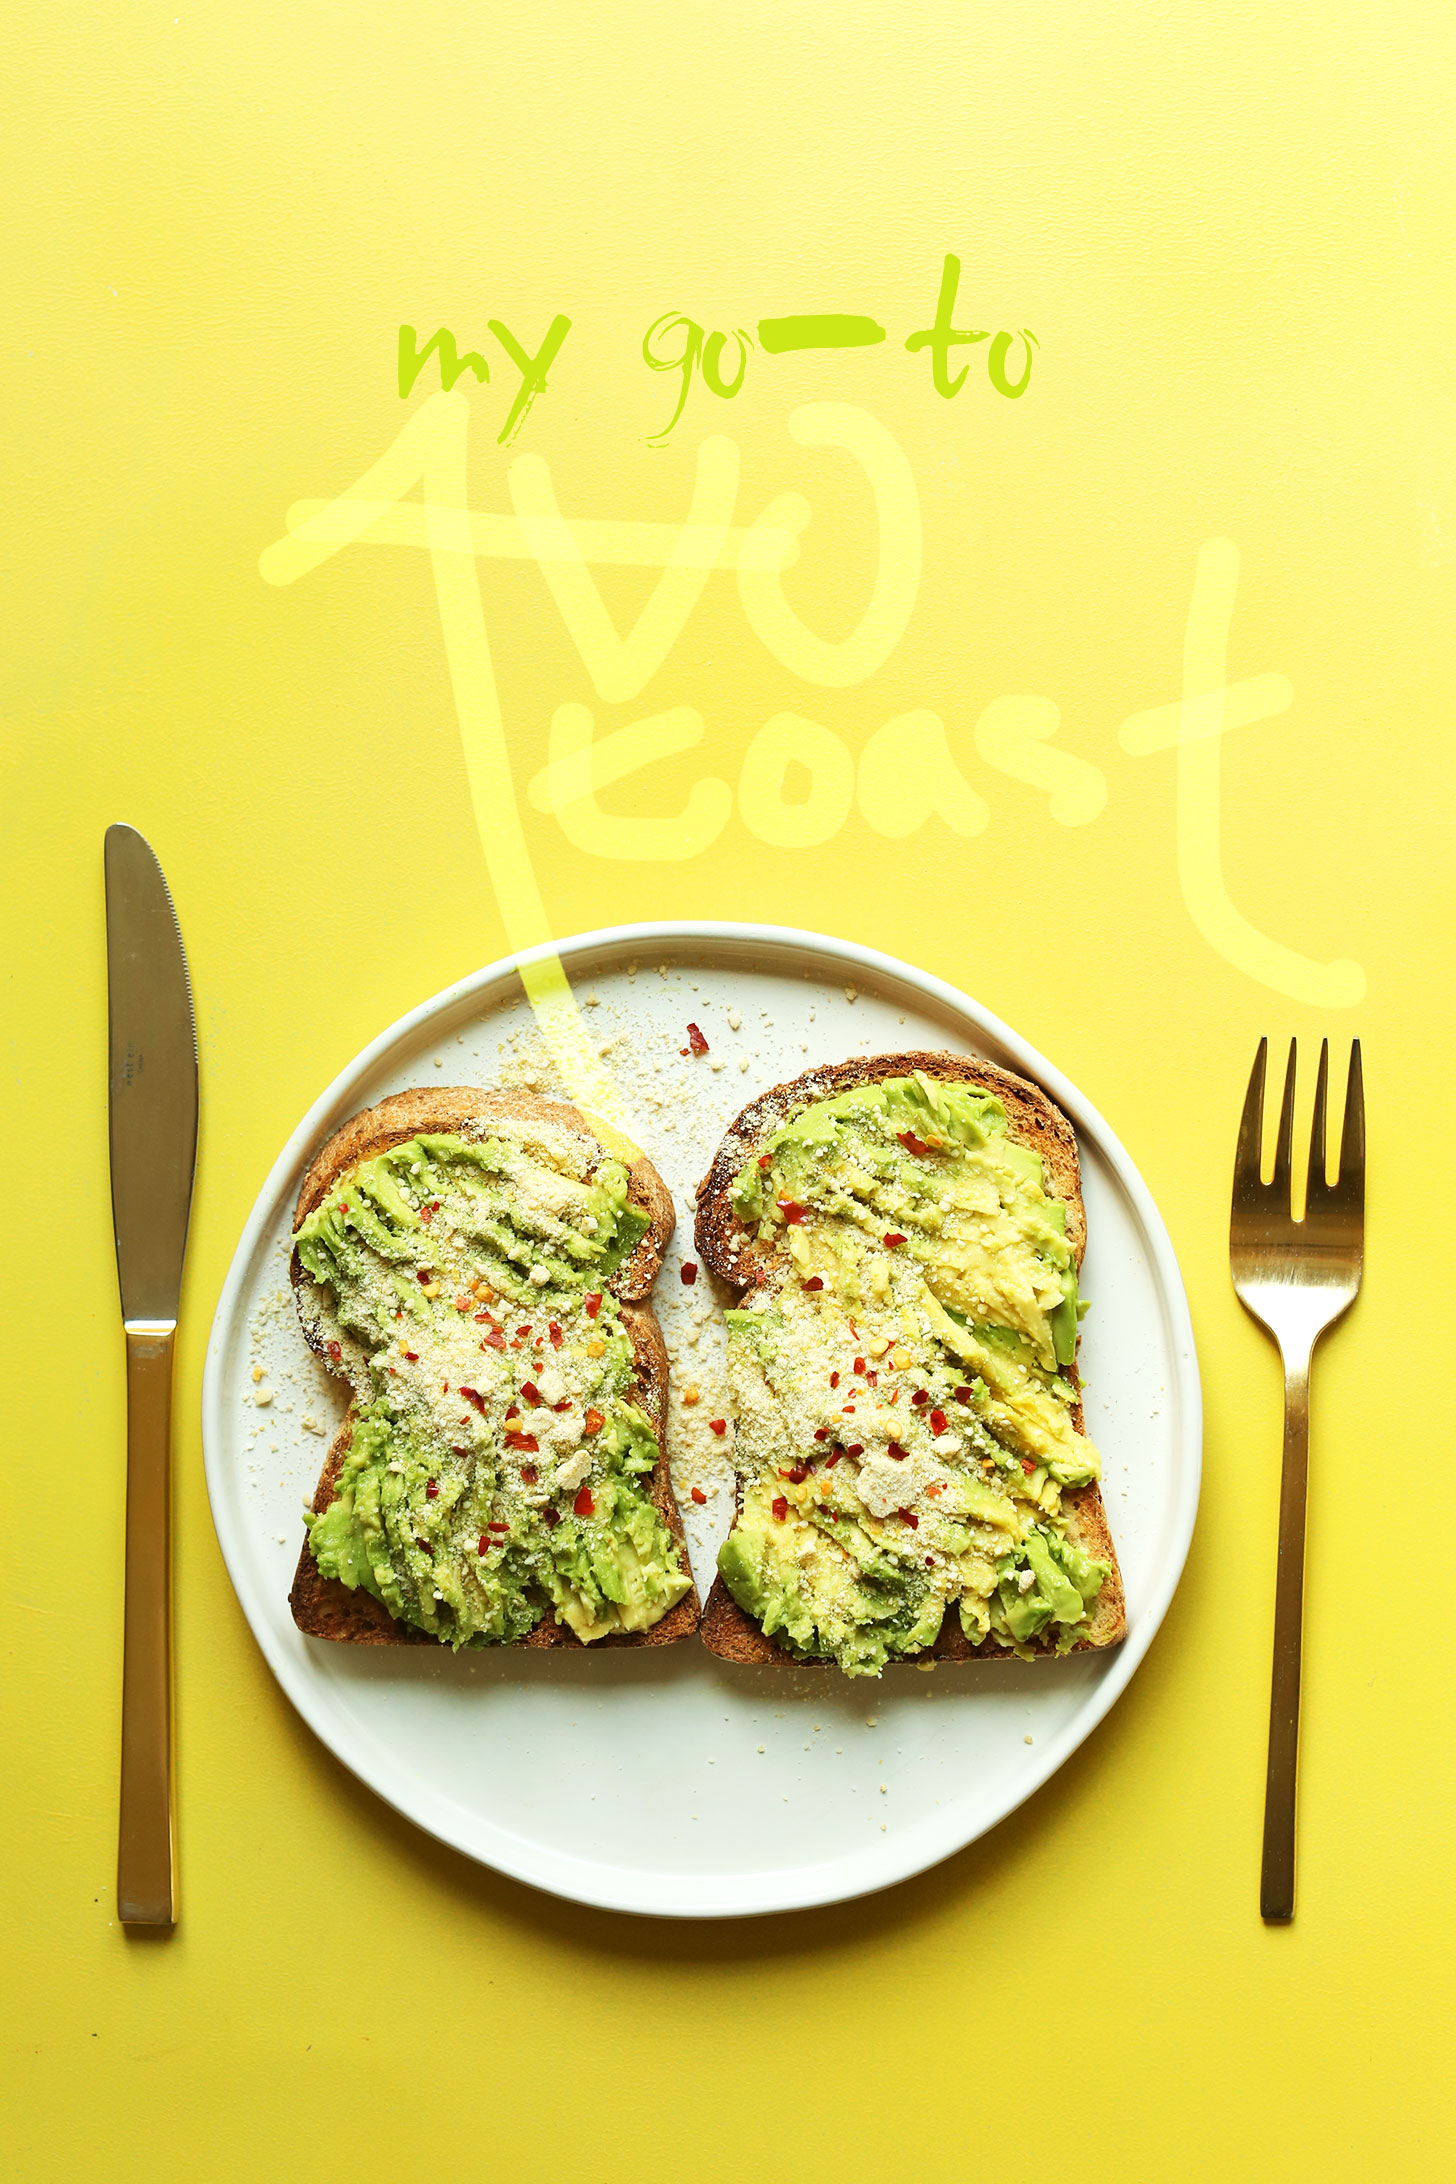 Two slices of my go-to gluten-free vegan avocado toast recipe for a simple breakfast